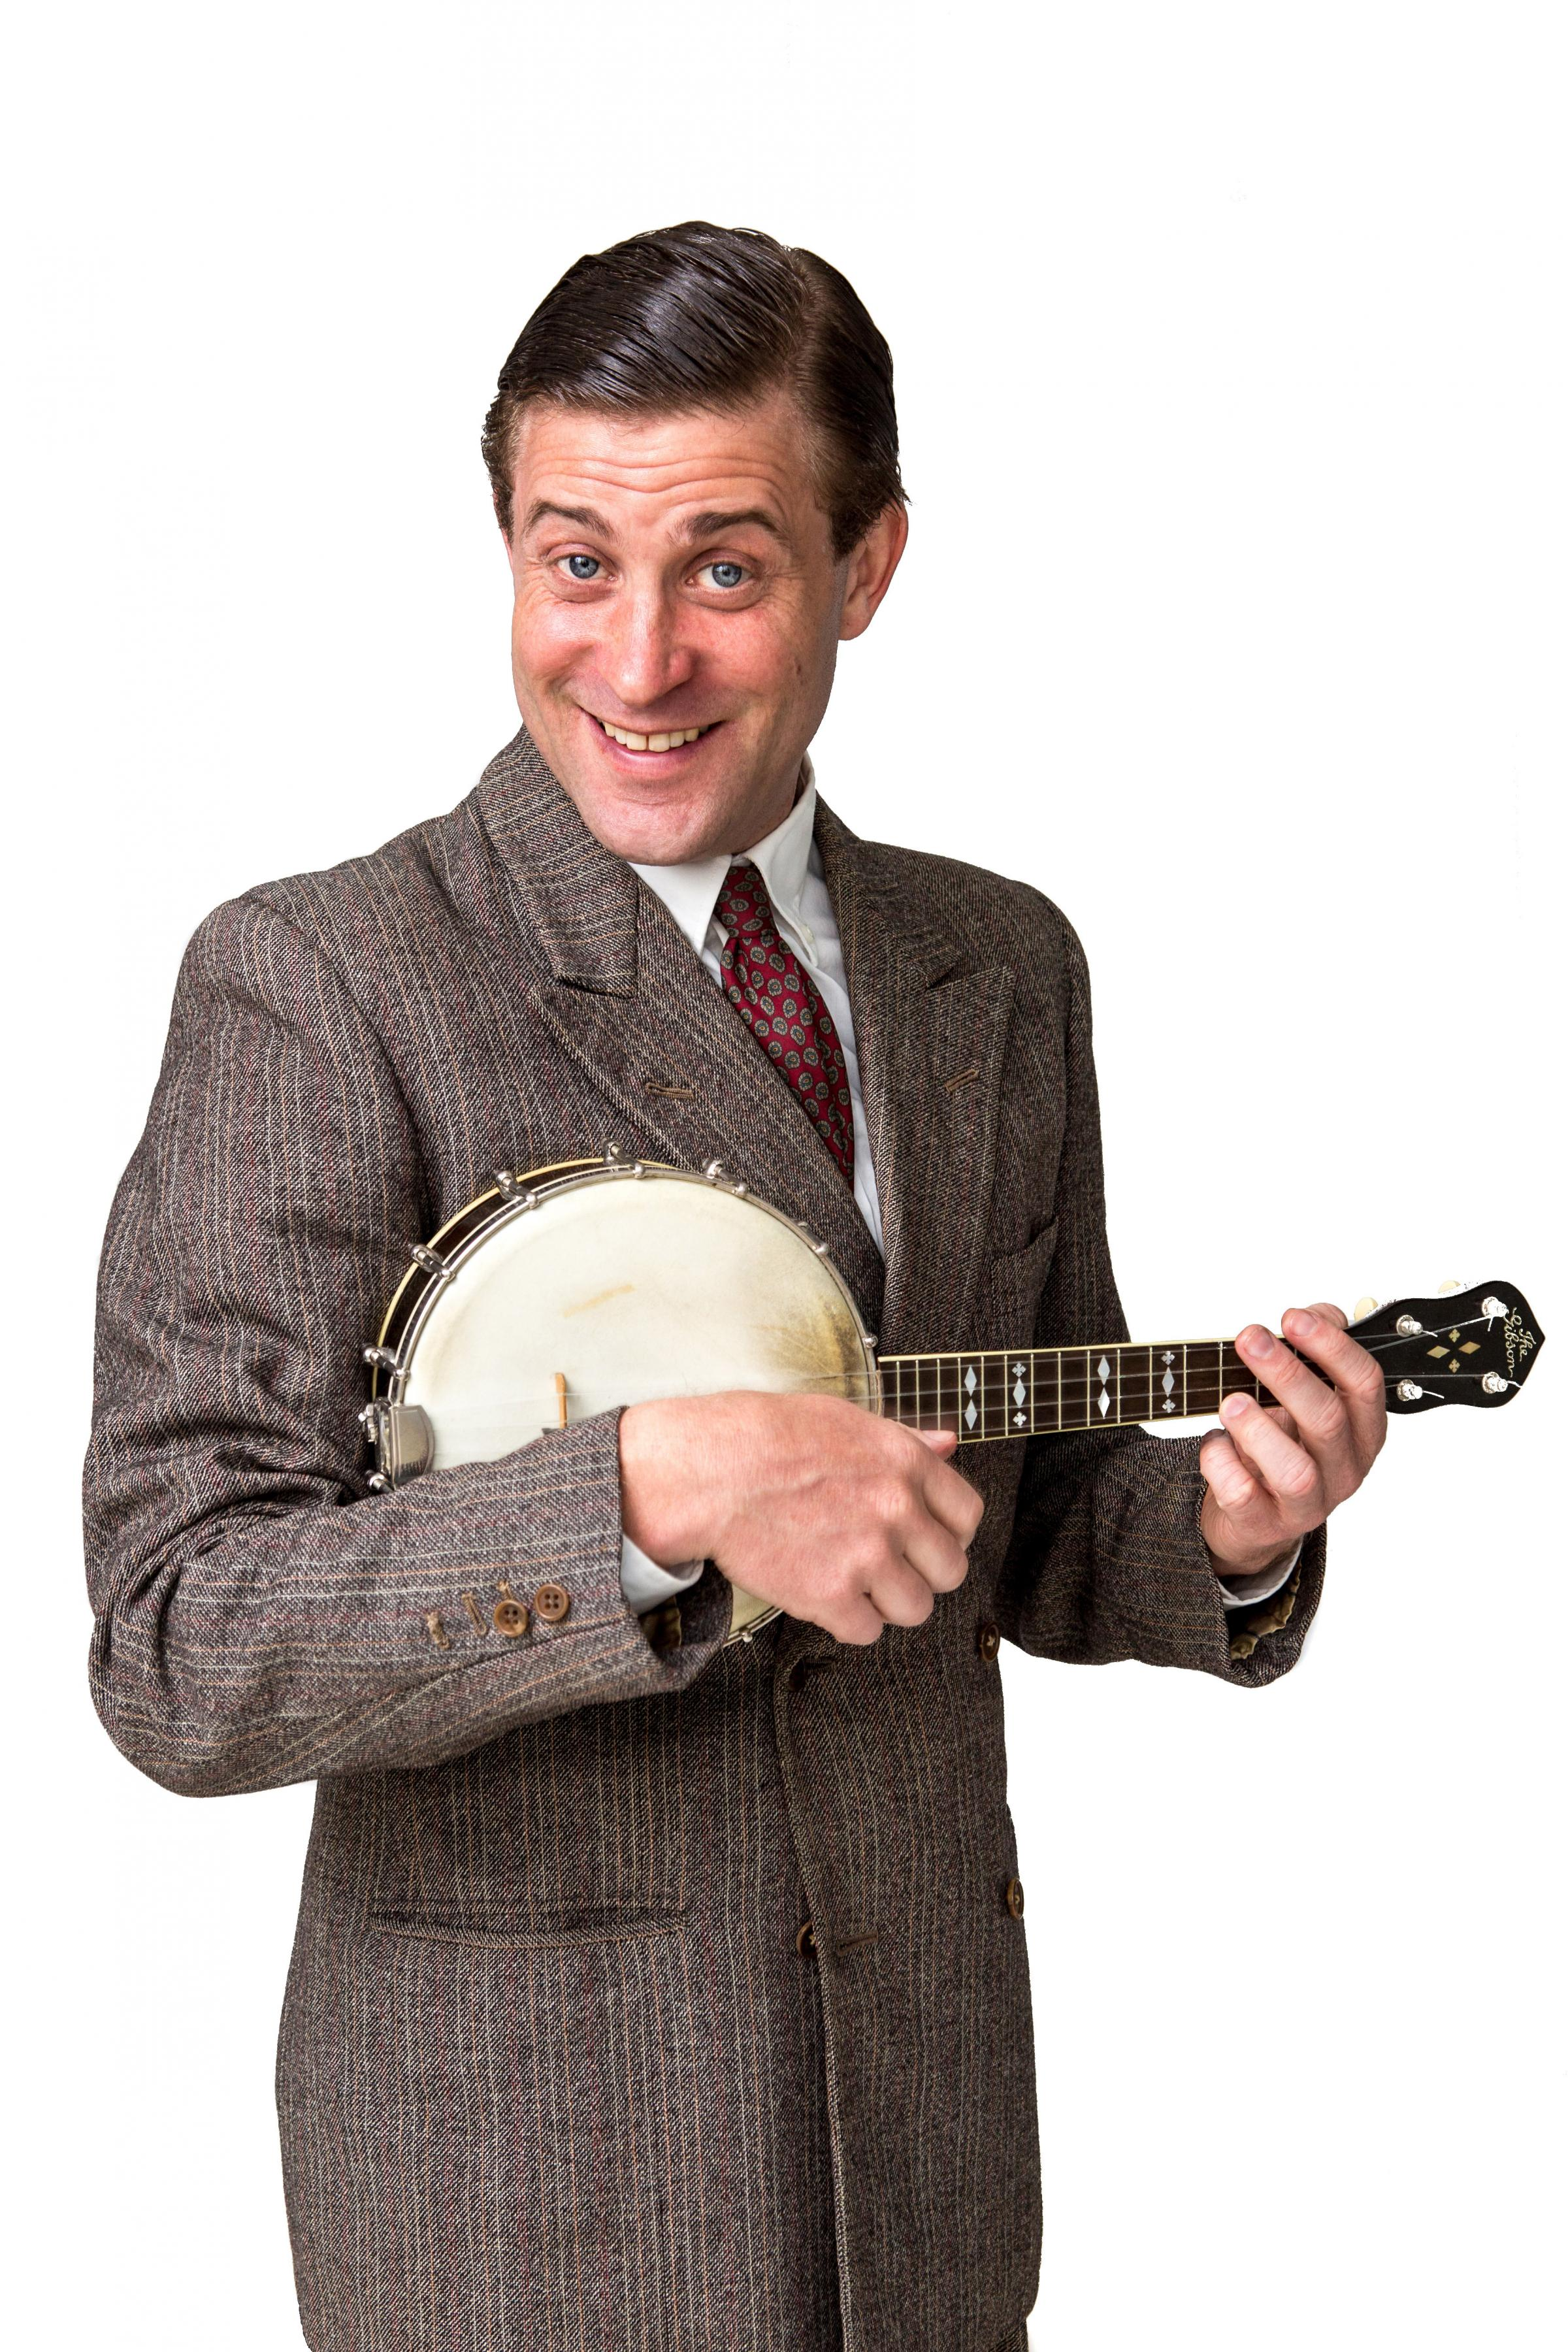 Hear the songs that made George Formby such a star